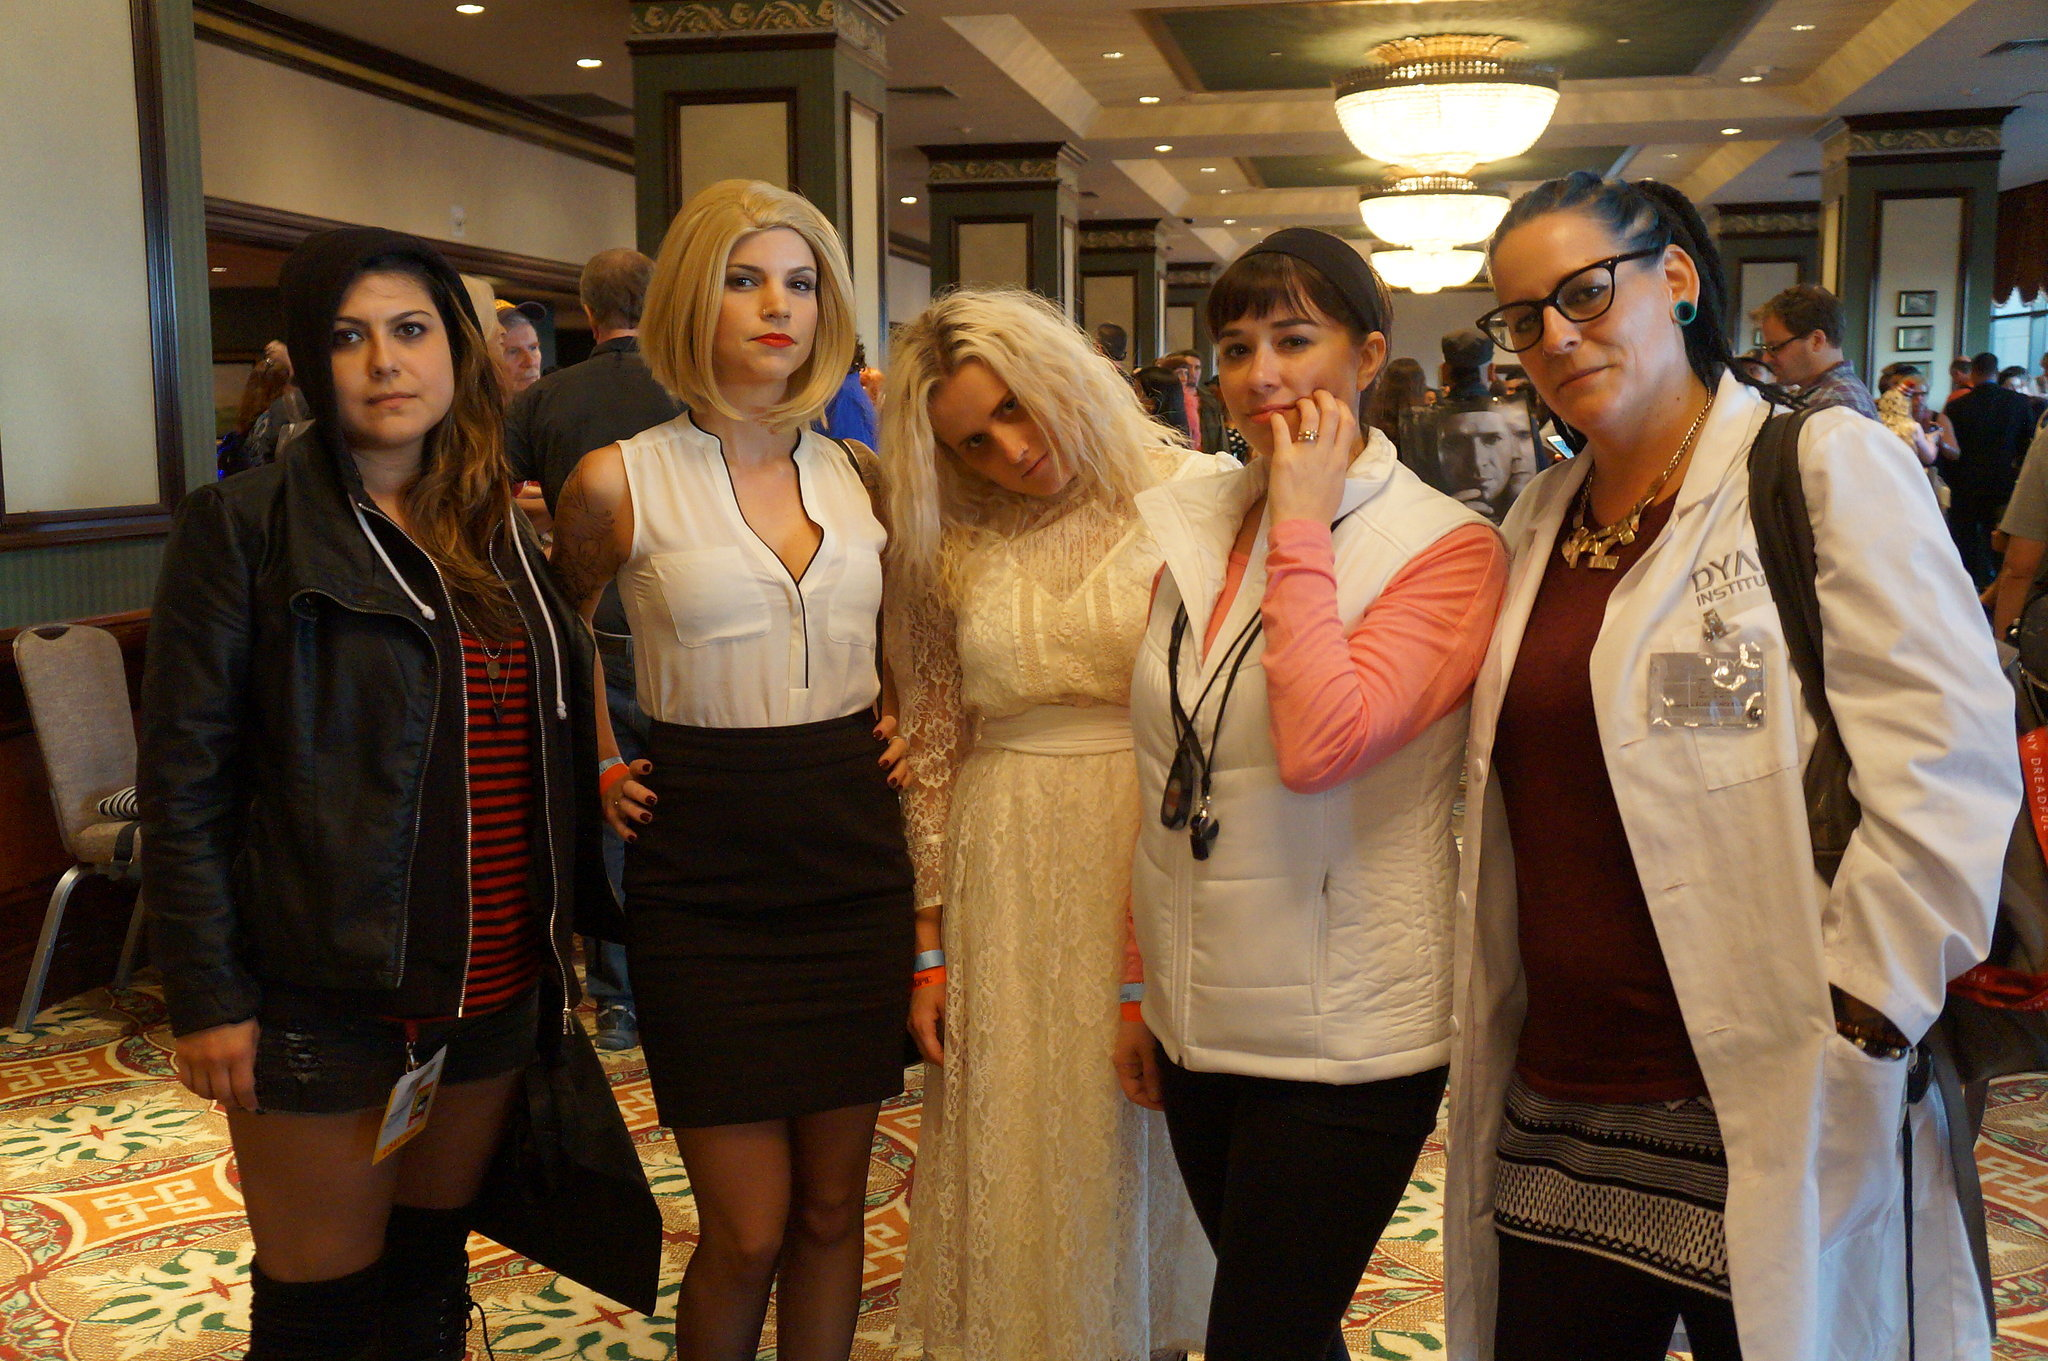 Orphan Black Clones 40 Amazing Costumes For Geeky